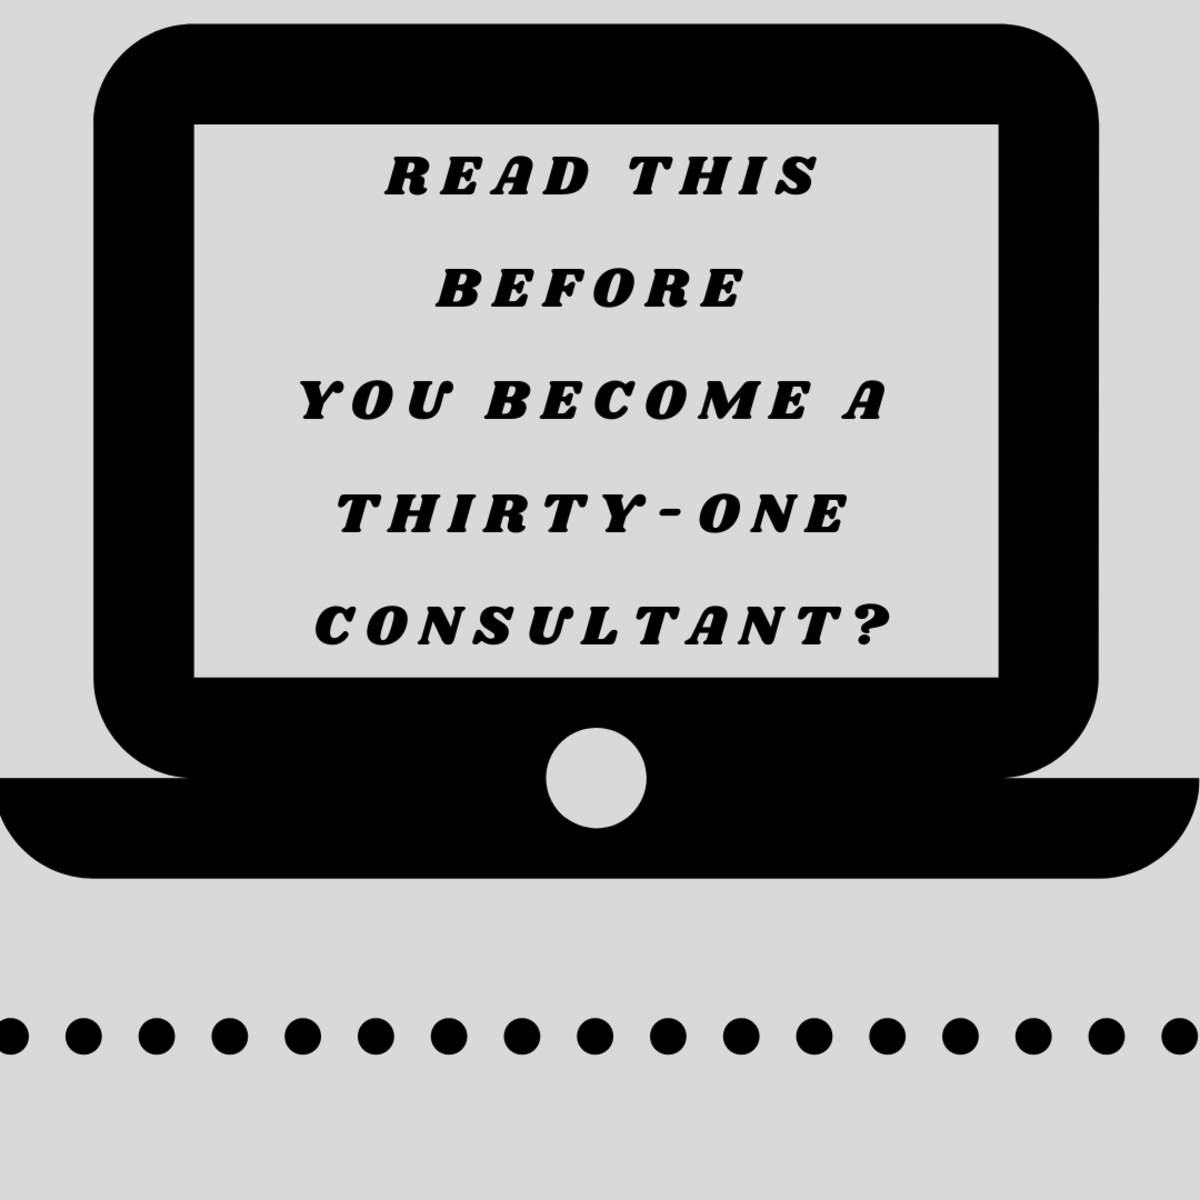 Want to become a Thirty-One consultant? Read this before you do.